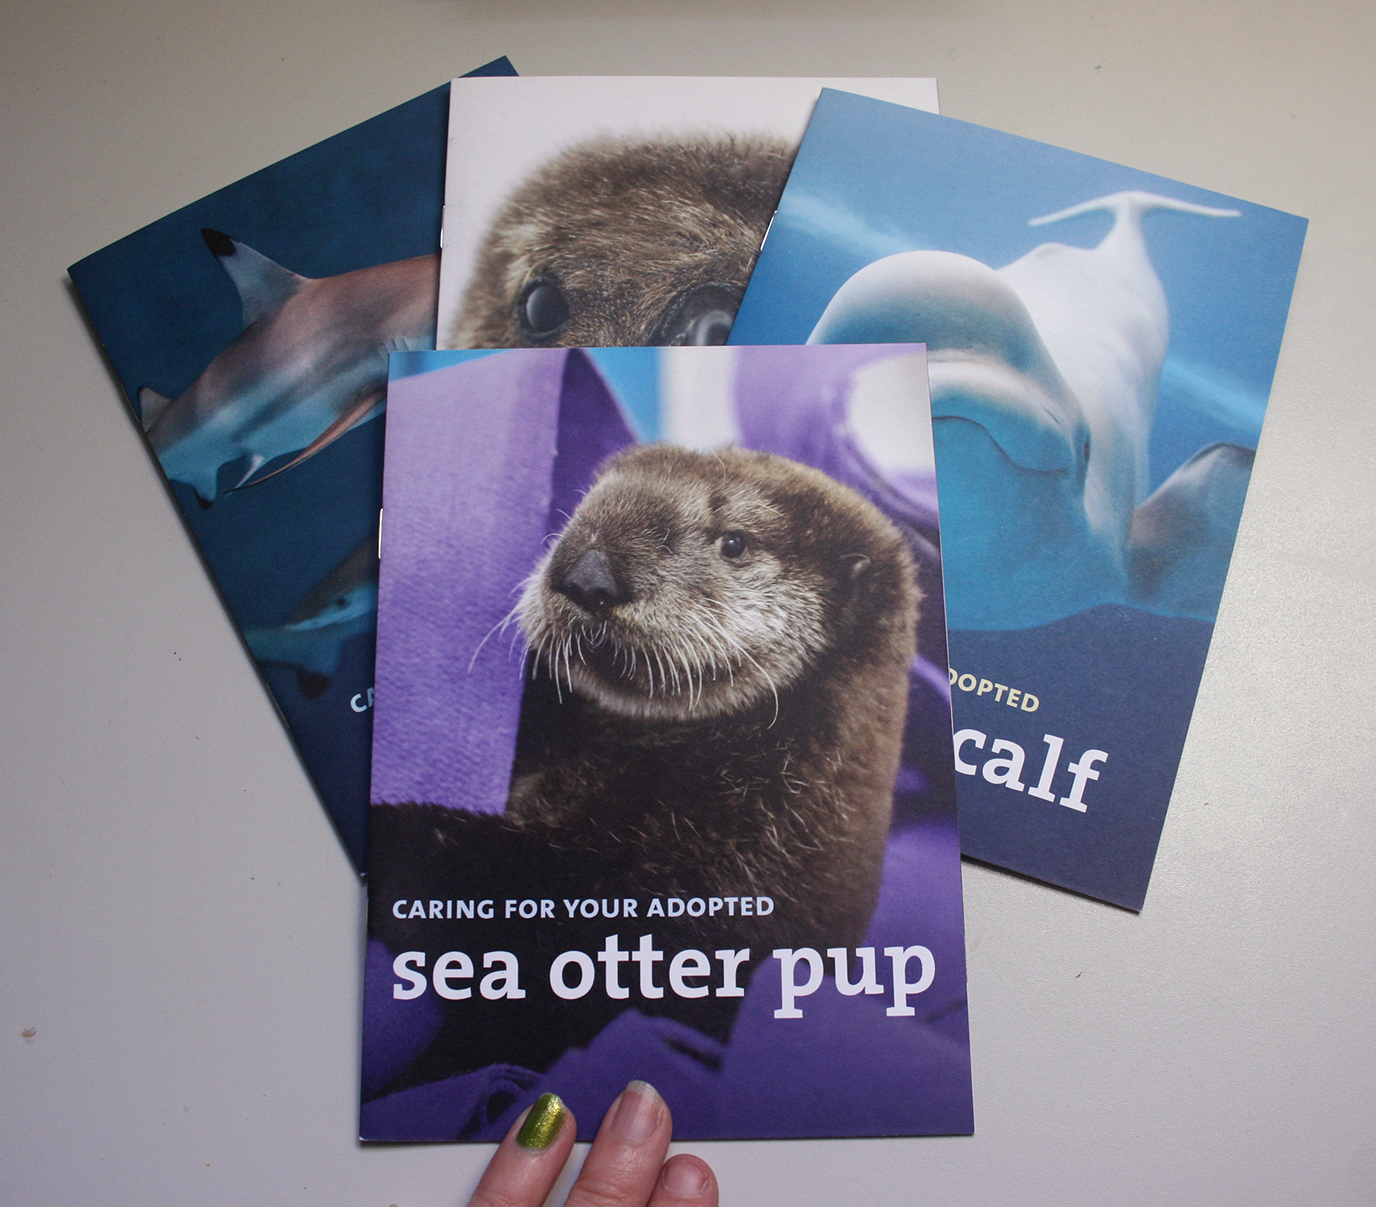 A set of four booklets are shown with one on top. The top booklet has a photo of a fluffy sea otter pup on the cover, with the title, 'Caring for your adopted sea otter pup'.